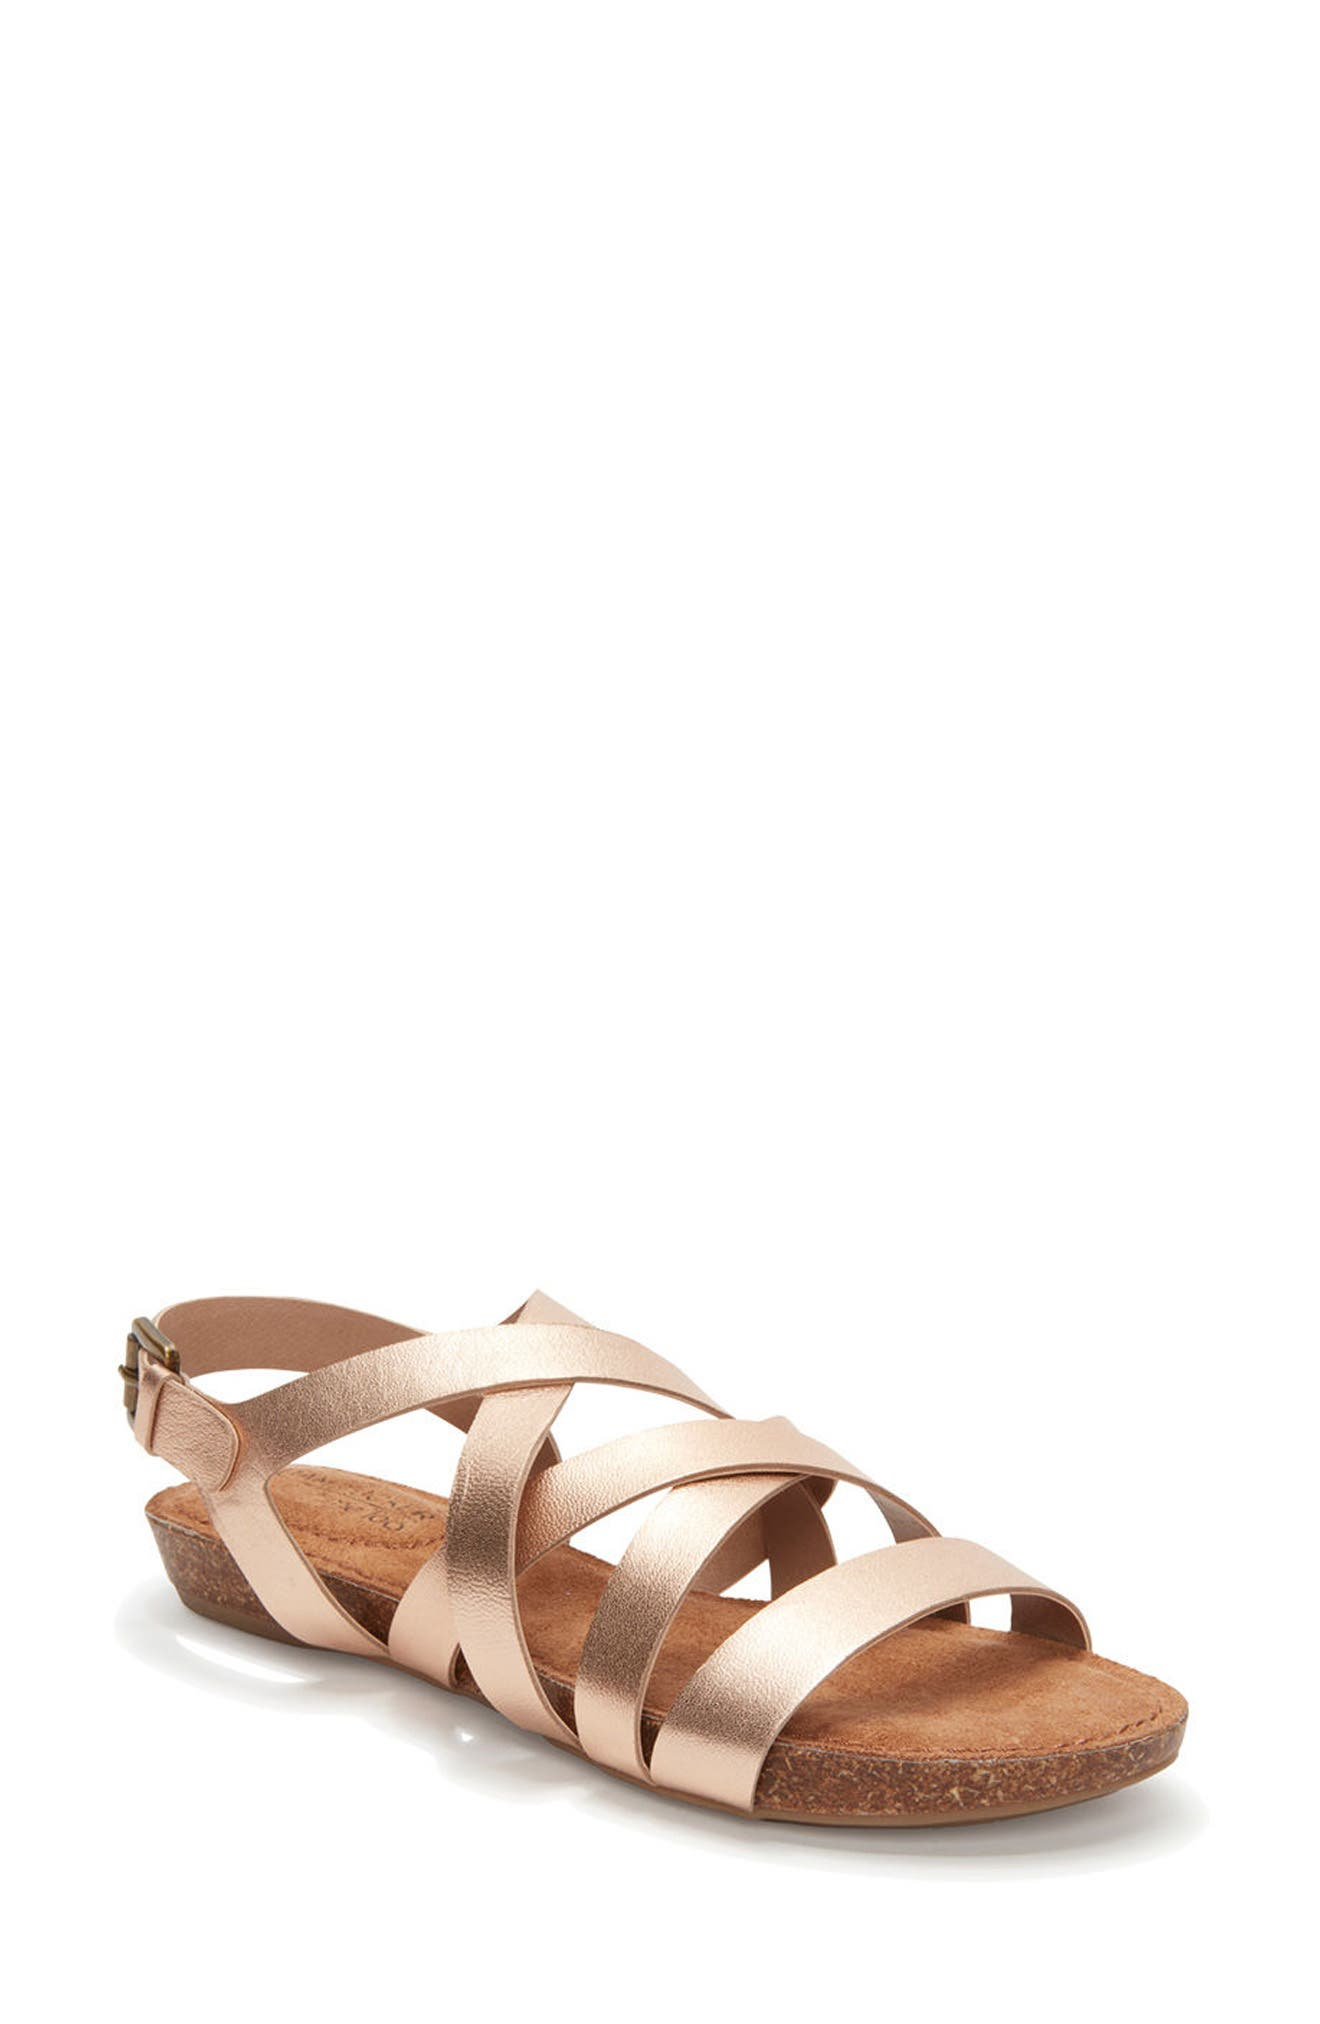 Adam Tucker Nickie Sandal,                             Main thumbnail 1, color,                             Champagne Leather